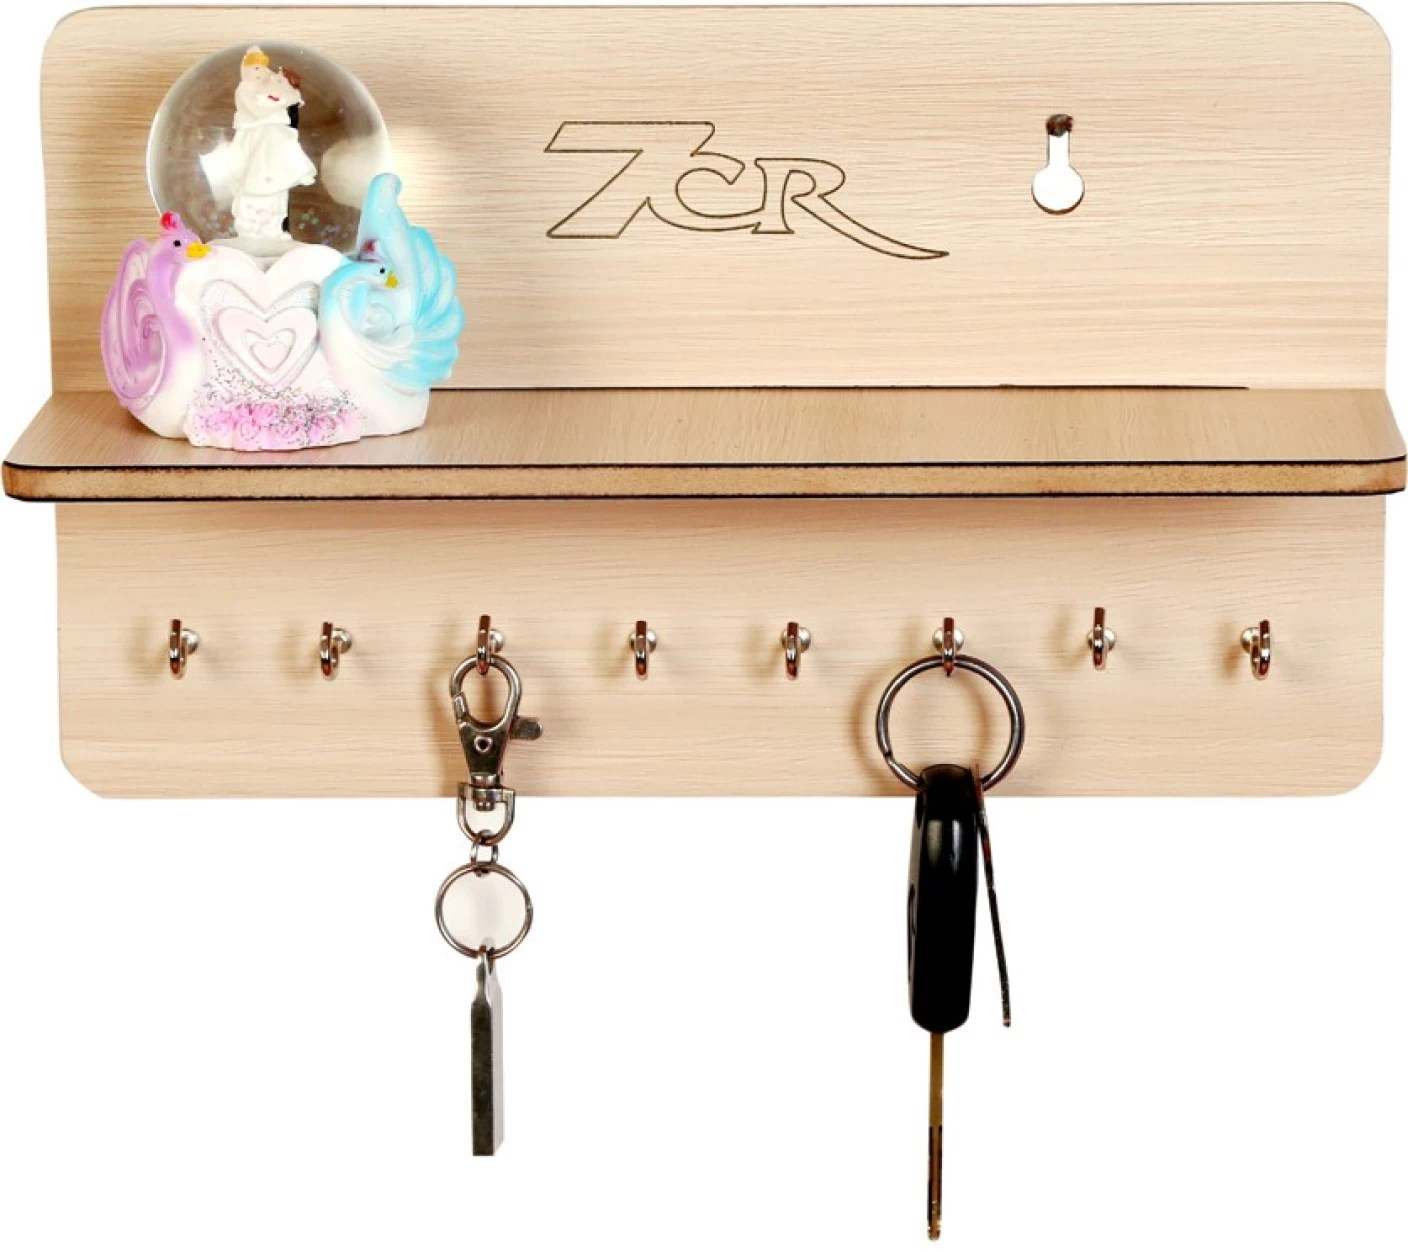 Wooden Key Holder With Shelf 7cr F Shelf Wooden Key Holder Price In India Buy 7cr F